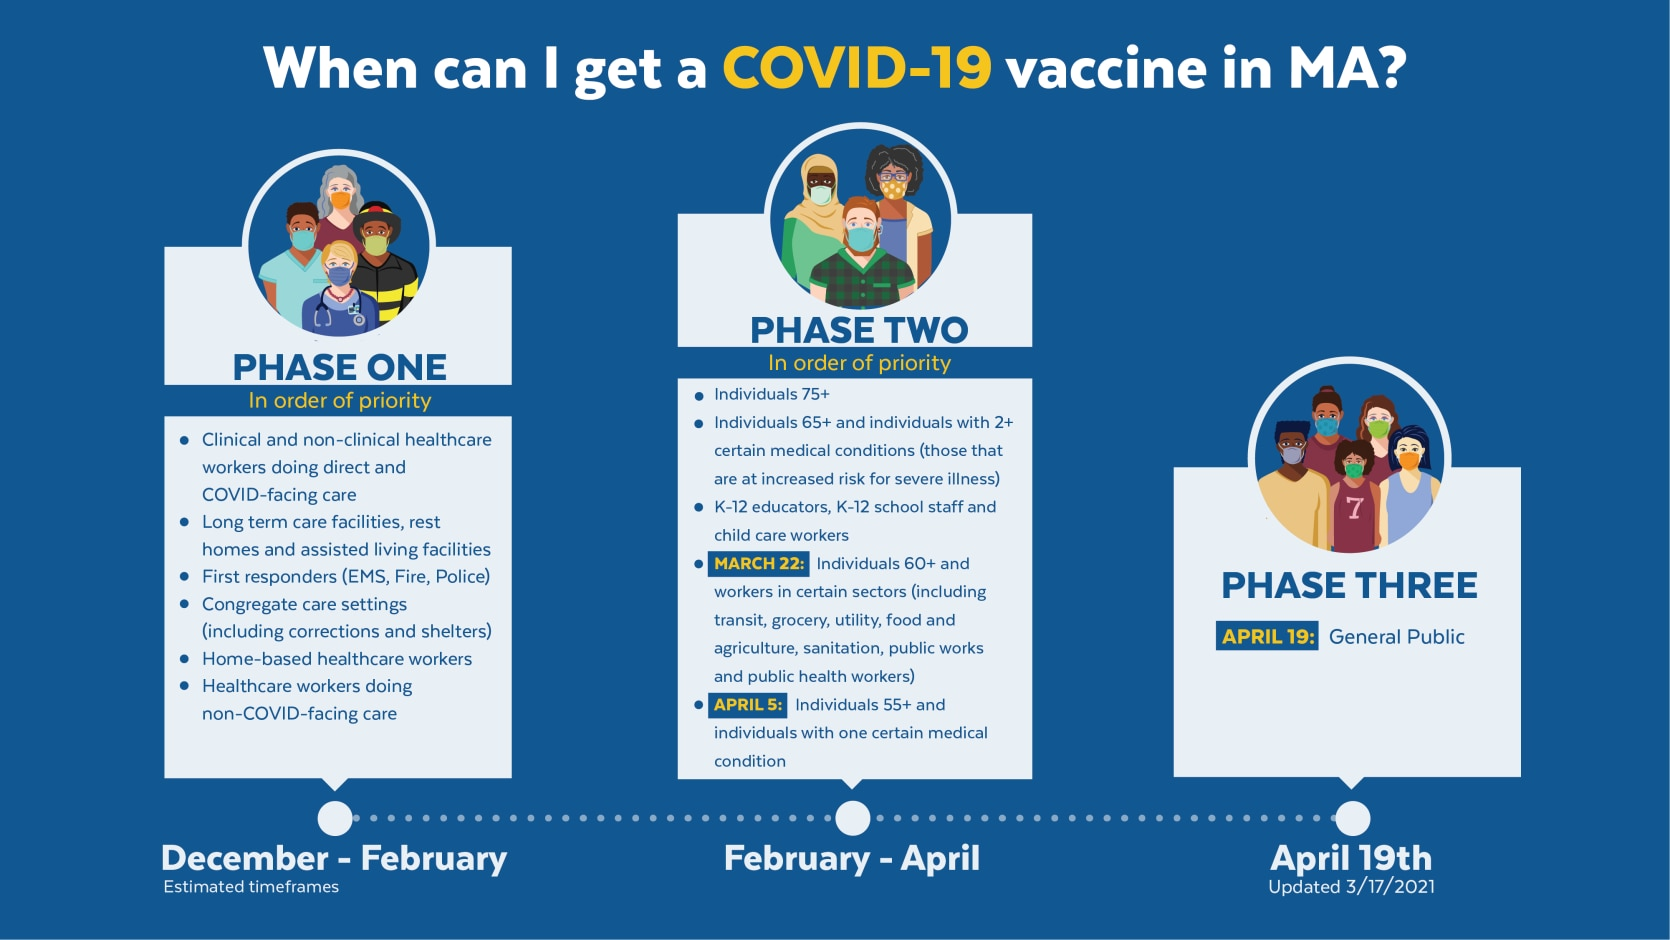 Baker-Polito Administration Announces Vaccine Timeline for All Residents, Provides Weekly Dose Updates & $24.7 Million in Federal Funding for Vaccine Equity Initiative